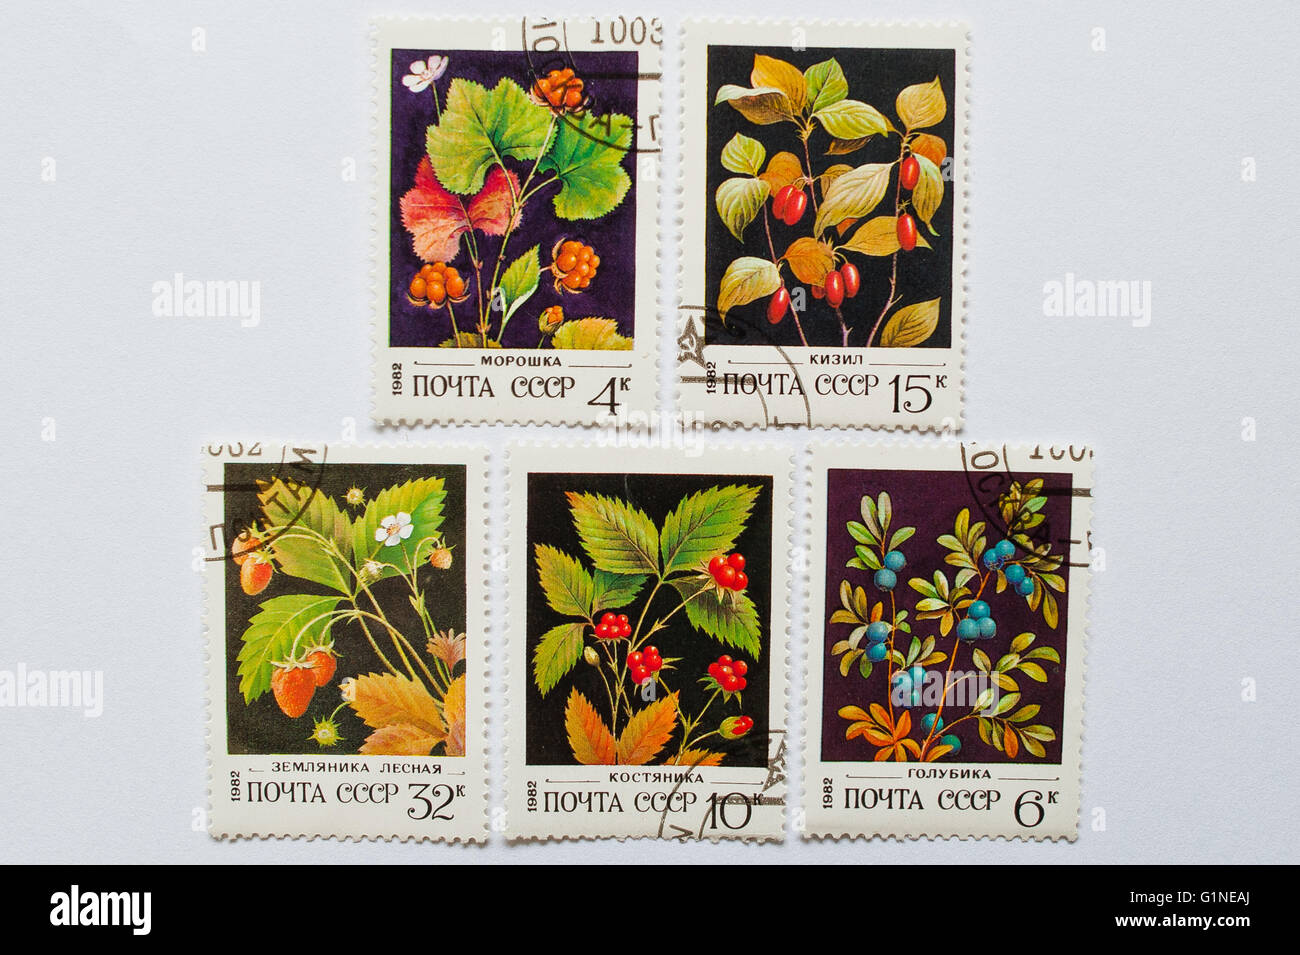 UZHGOROD, UKRAINE - CIRCA MAY, 2016: Collection of postage stamps printed in USSR, shows forest berries series, Stock Photo